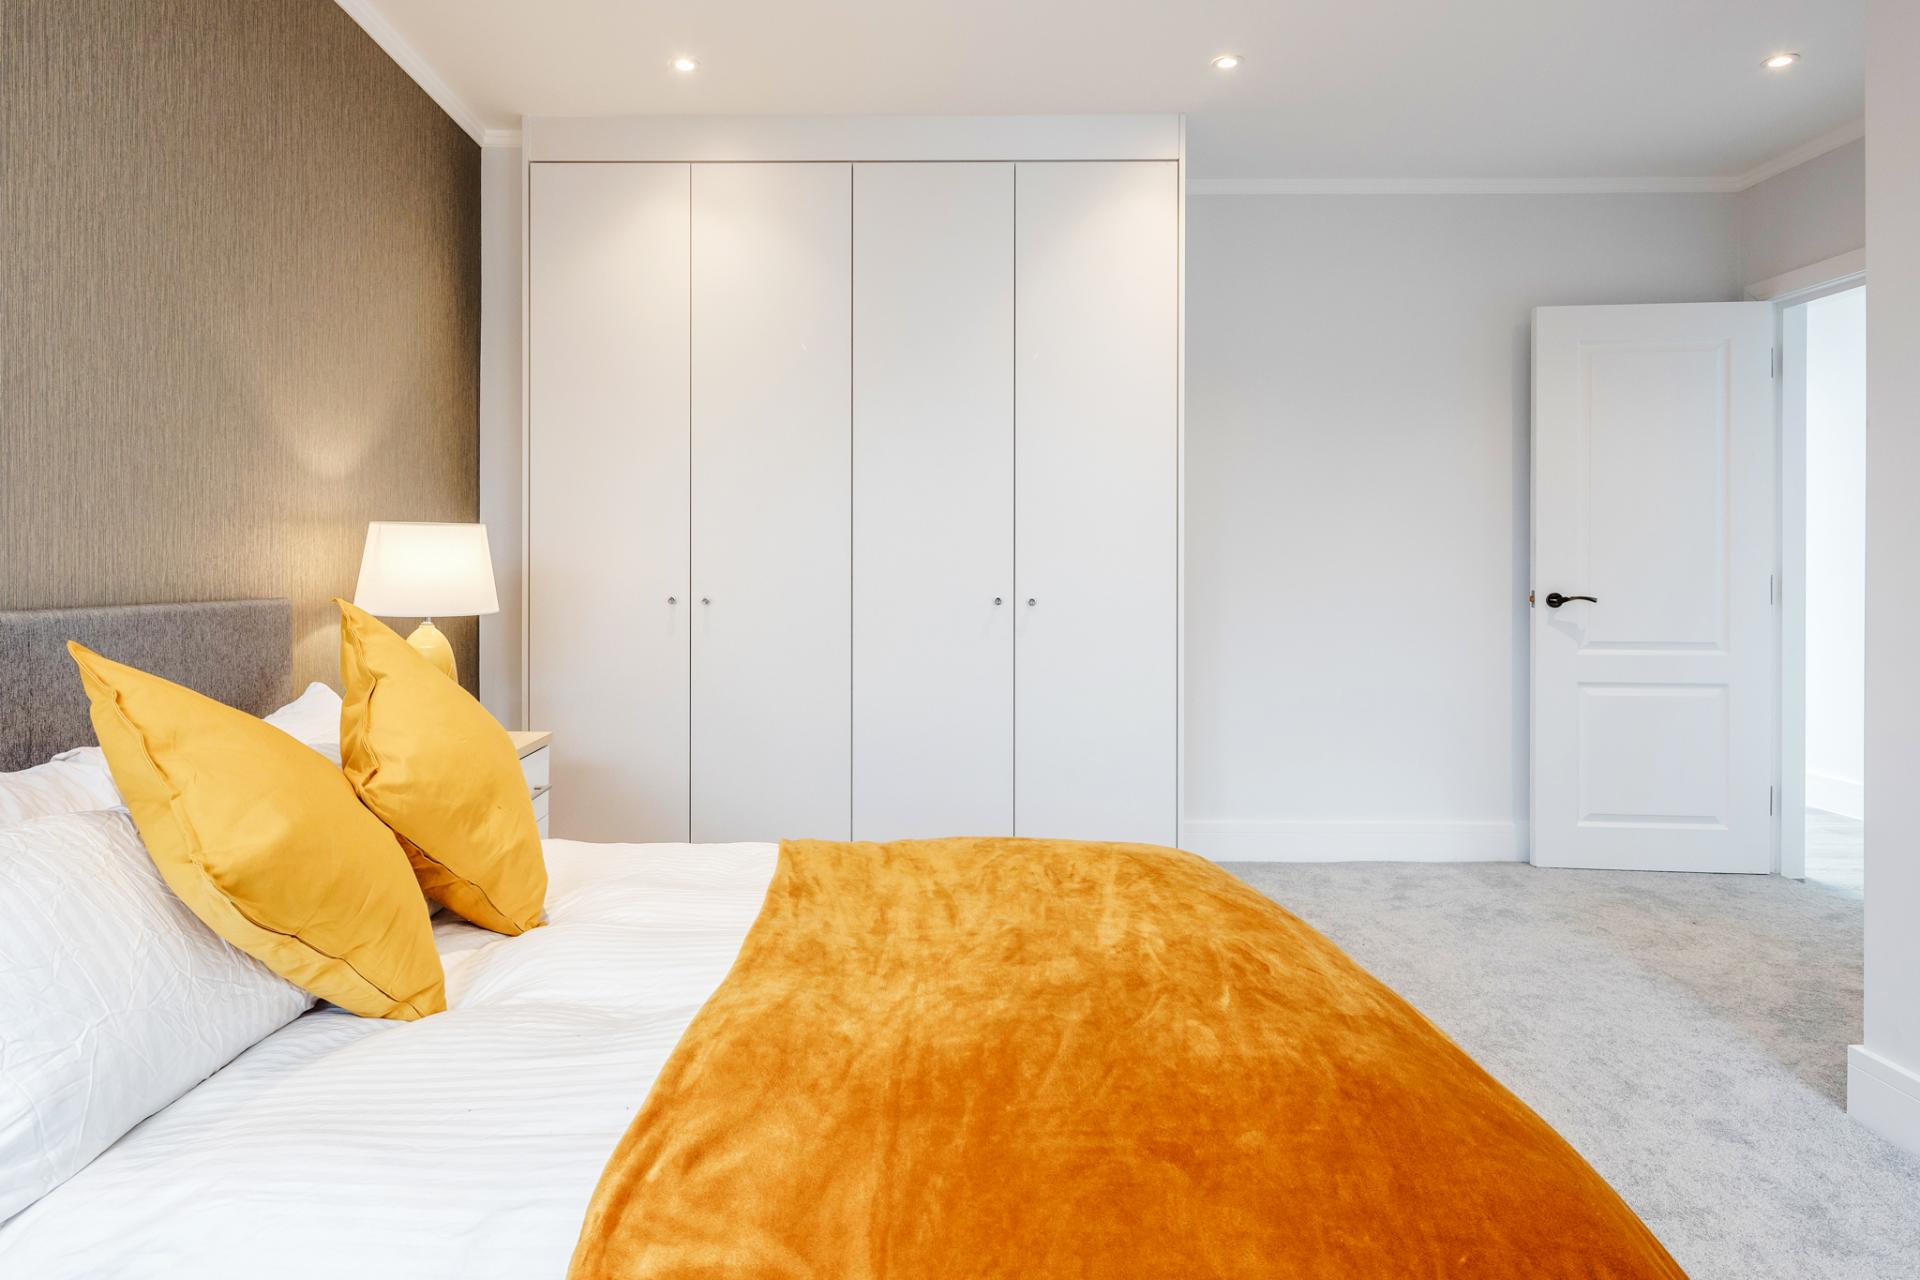 Bed at Dudley House Apartments, Brentford, London - Citybase Apartments